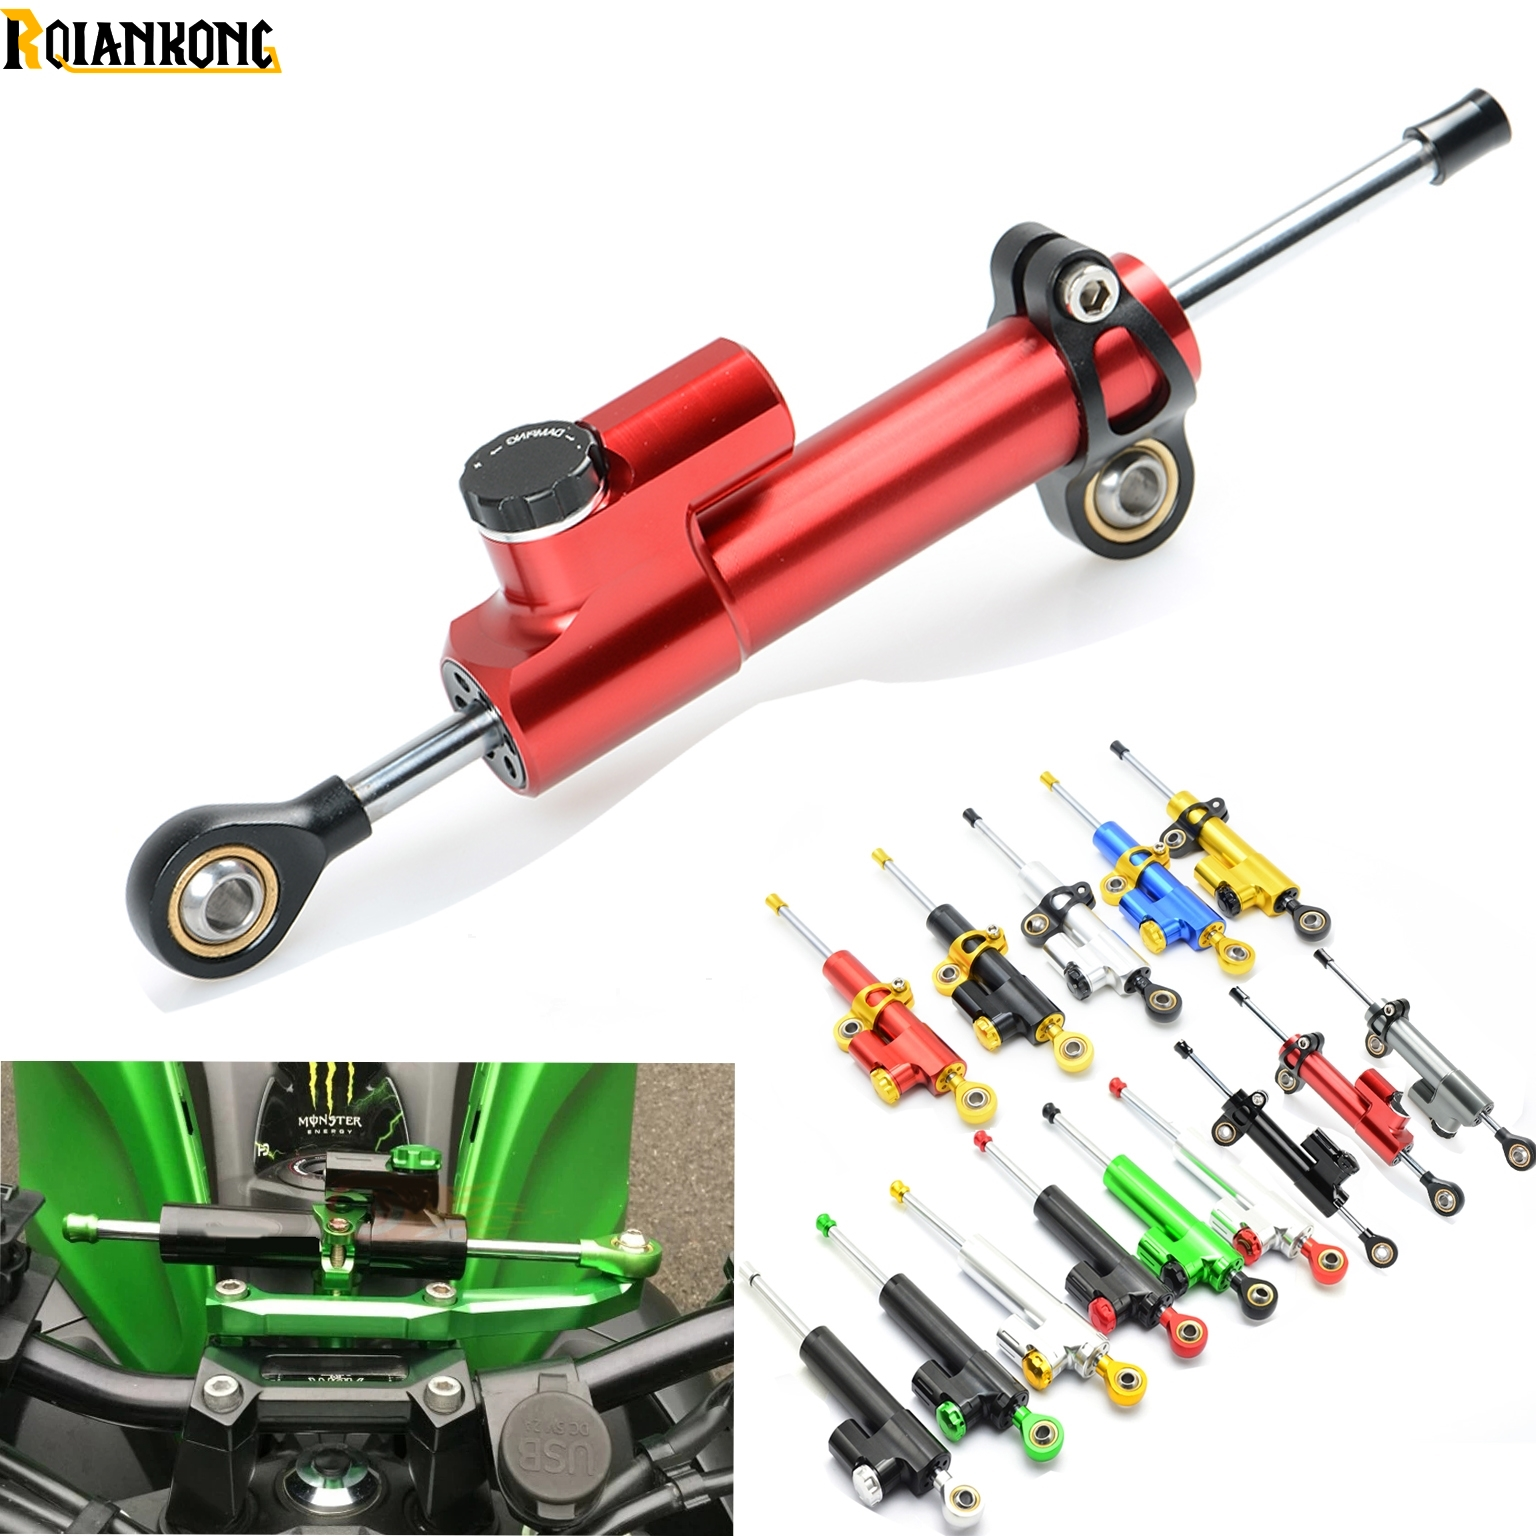 CNC Aluminum Motorcycle Steering Damper Stabilizer Linear Safe Control for Yamaha XV 950 R ABS/Racer YBR 125 tmax500 tmax530<br>